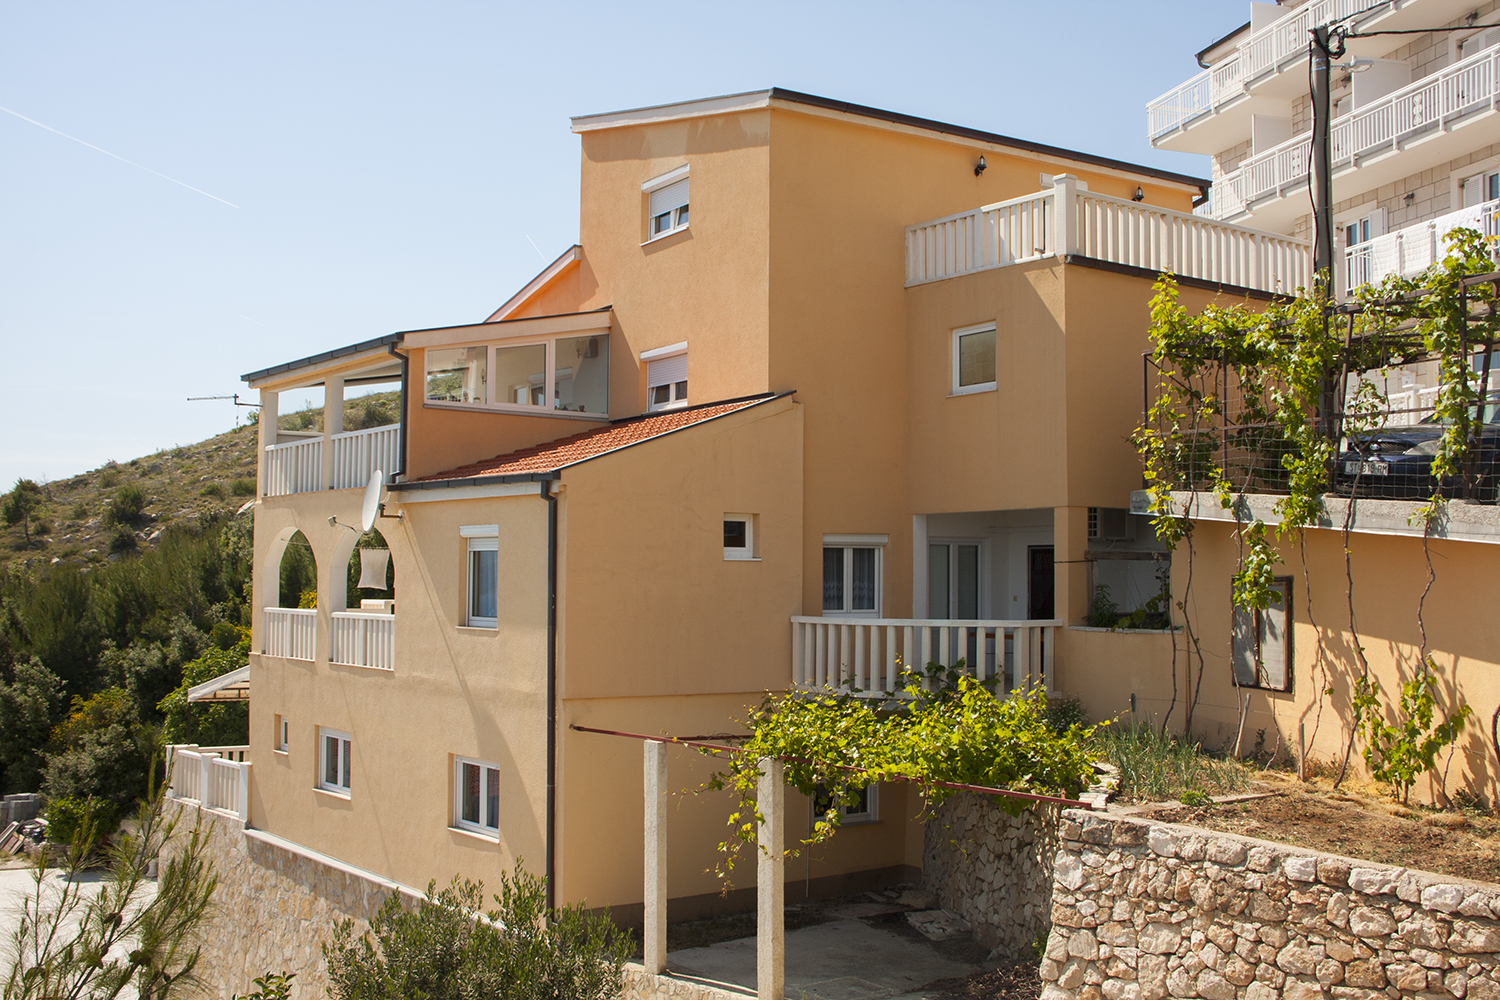 5450 - Celina Zavode - Apartments Croatia